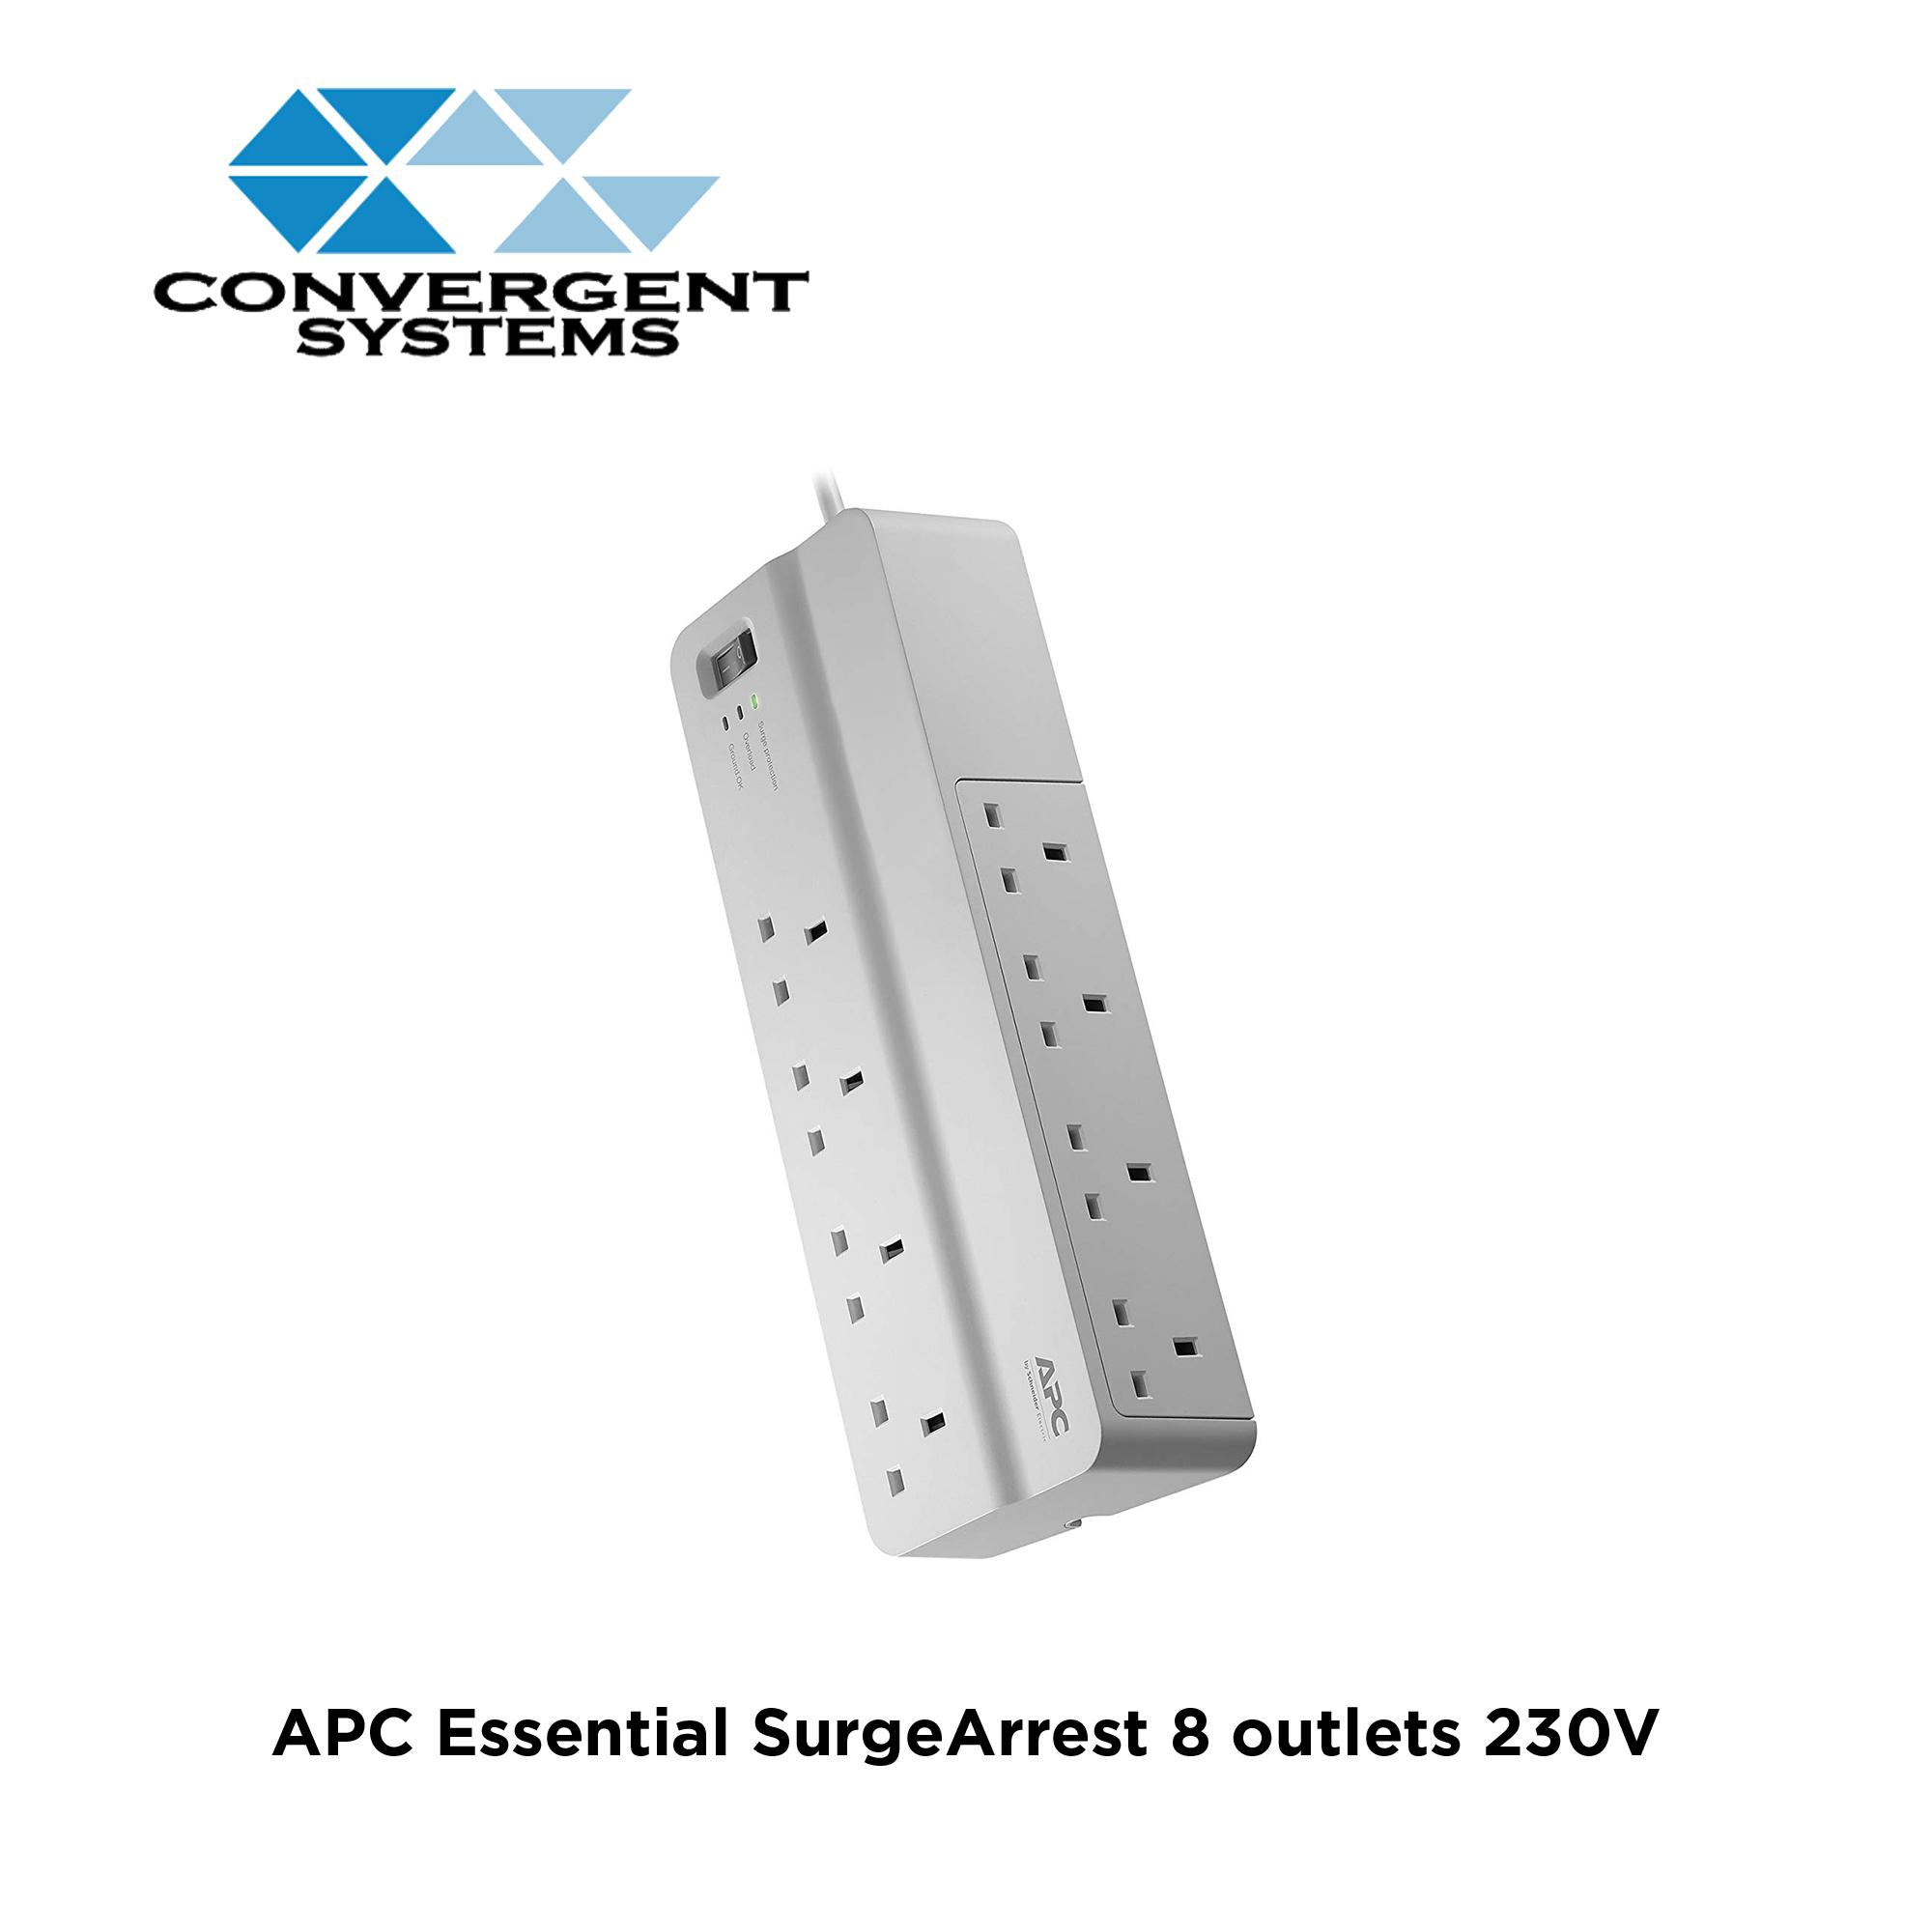 APC Essential SurgeArrest 8 outlets 230V UK